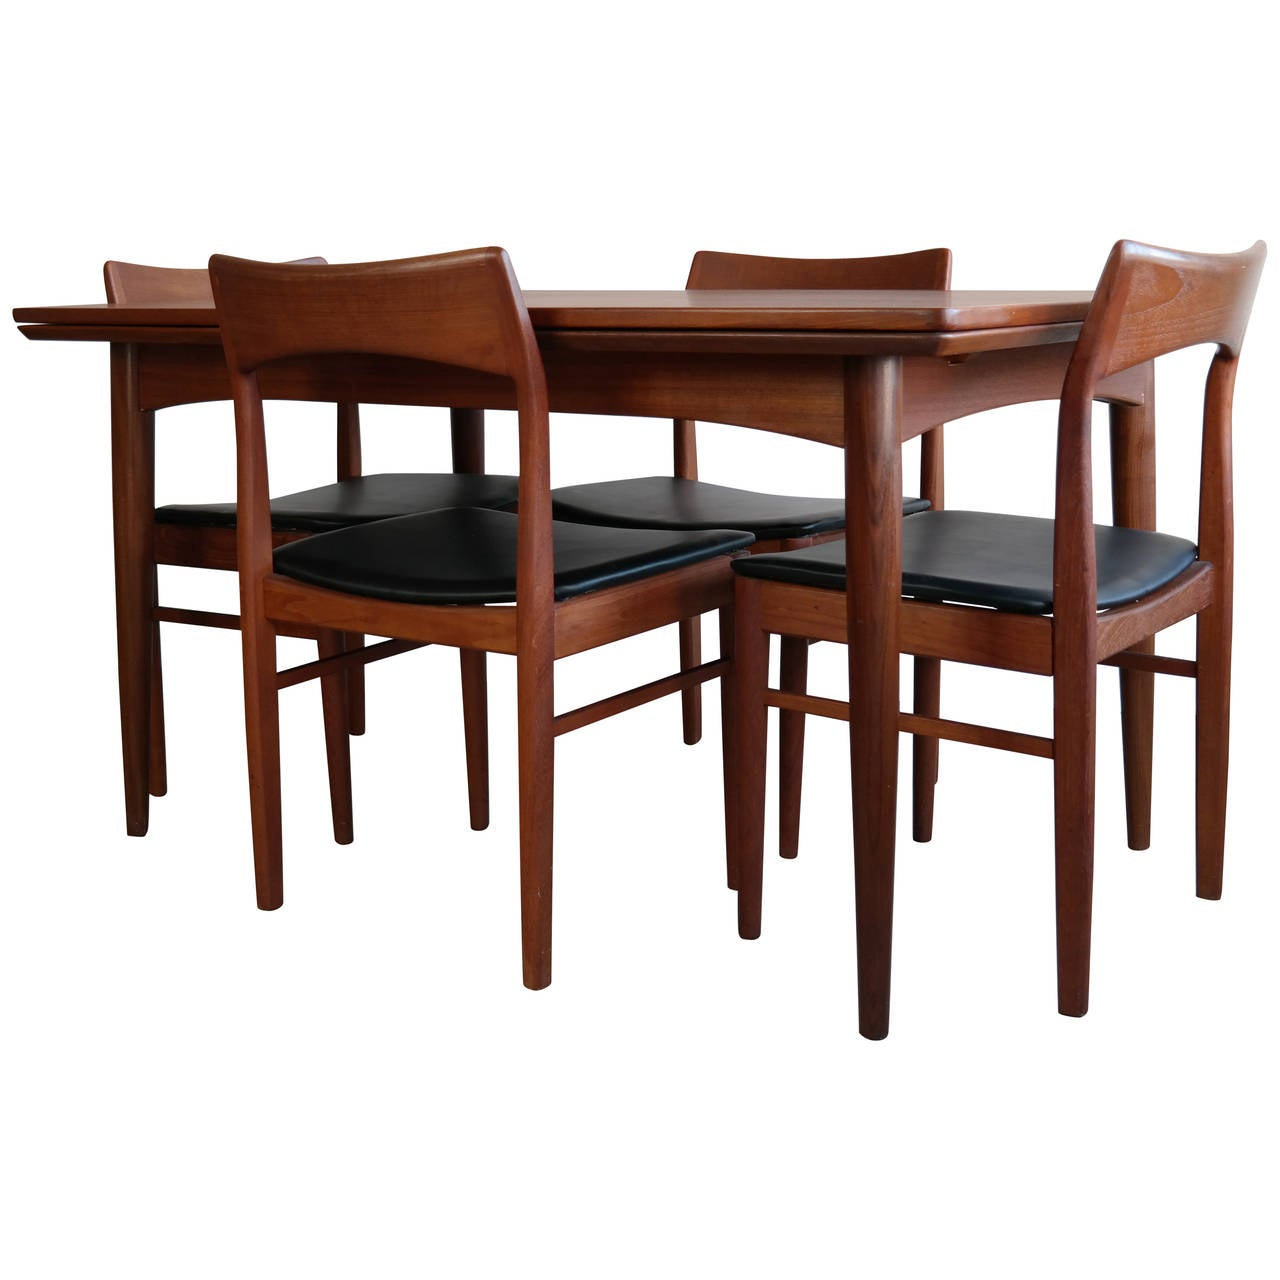 Danish modern dining set in teak at 1stdibs for Modern dining table and chairs set